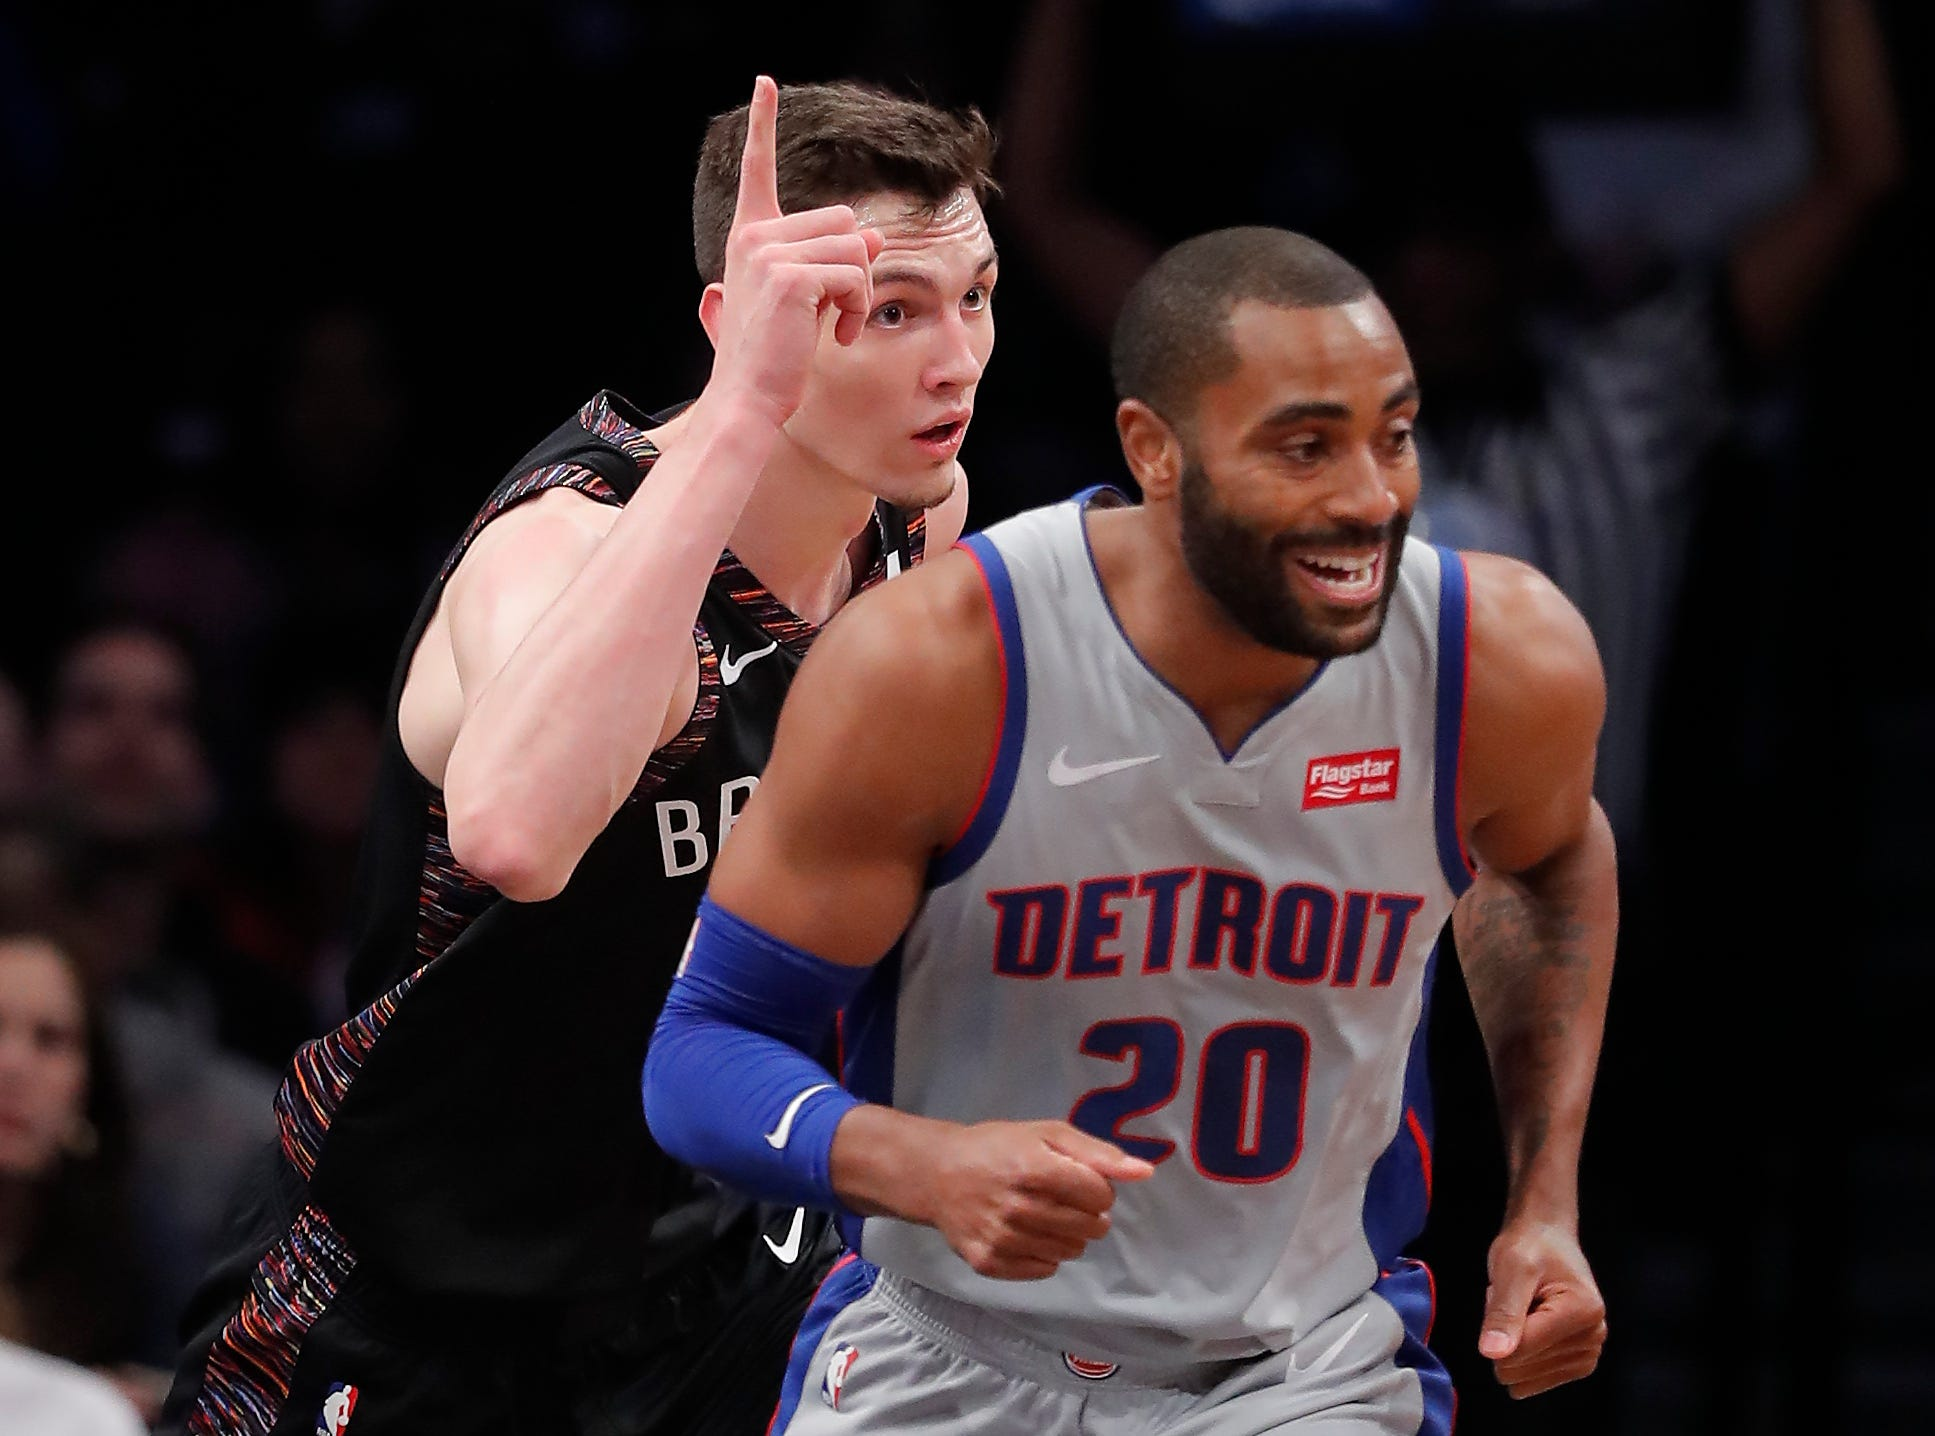 Brooklyn Nets forward Rodions Kurucs, left, reacts after scoring against the Detroit Pistons during the first quarter.